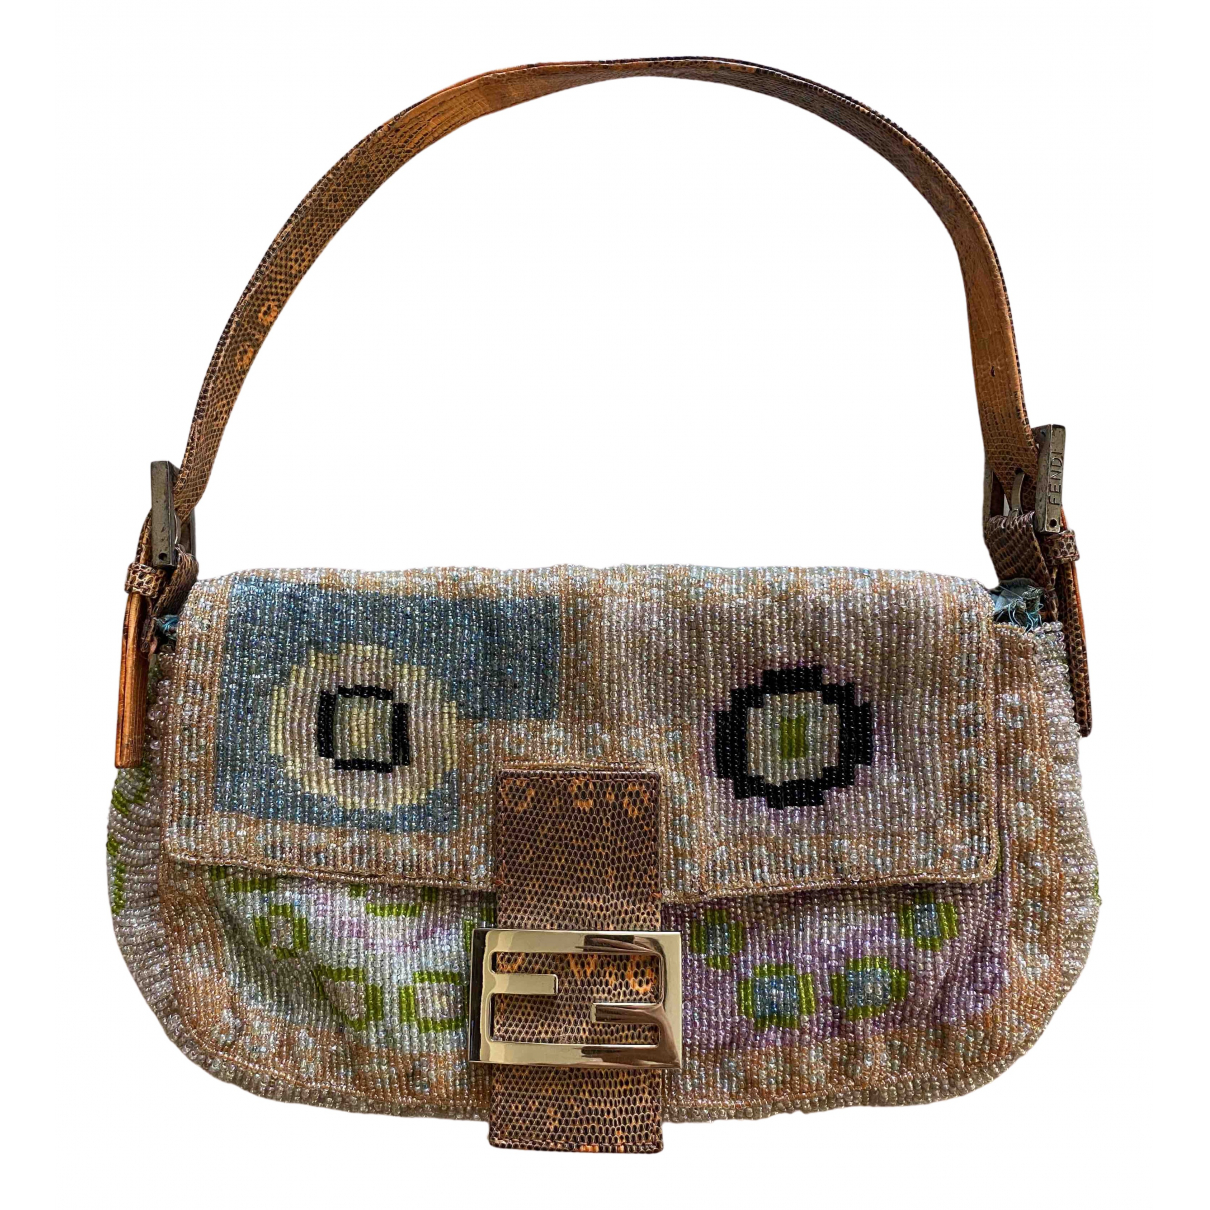 Fendi Baguette Multicolour Cloth handbag for Women N